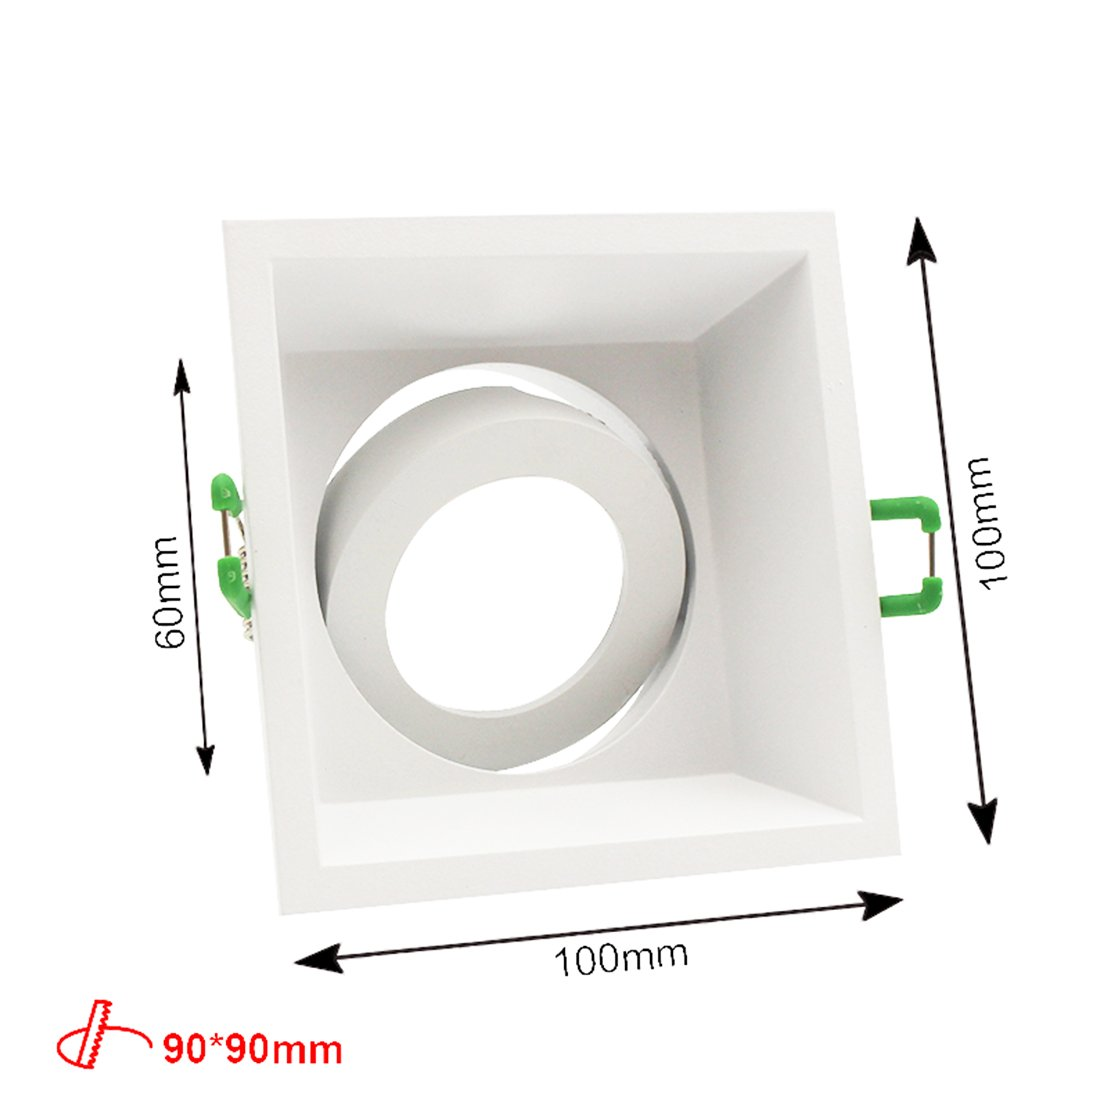 Recessed Can Light Trim Kit LED Downlight with 12V GU5.3 5W LED Bulb MR16 Socket Base,90mm Cut Out,Bulb Replaceable,Warm White,Angle Adjustable by LEDIARY (Image #3)